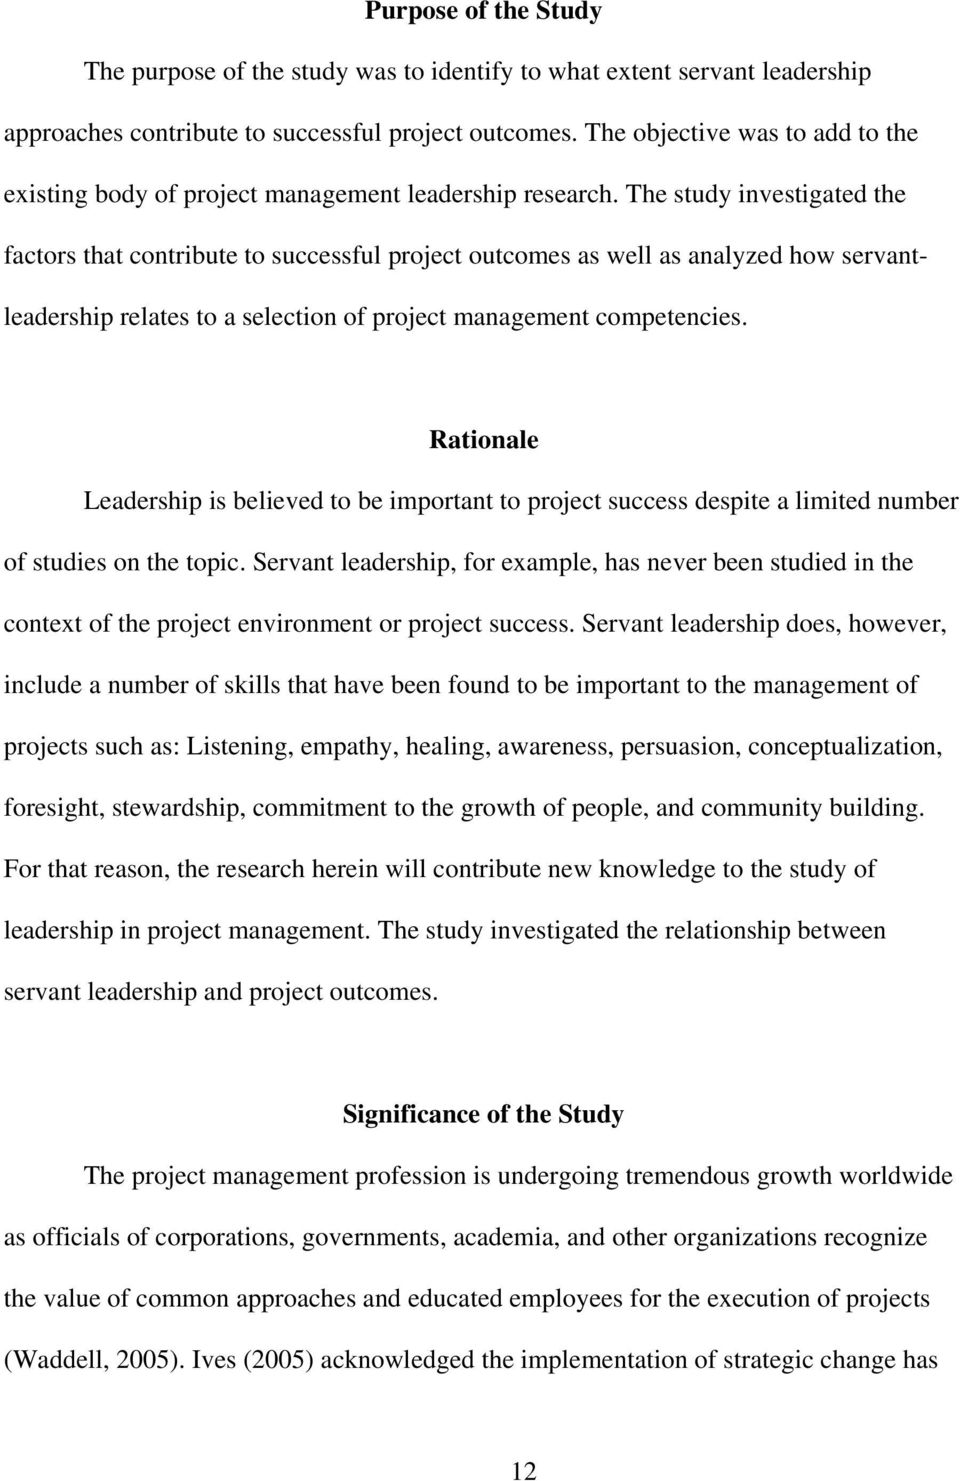 The study investigated the factors that contribute to successful project outcomes as well as analyzed how servantleadership relates to a selection of project management competencies.